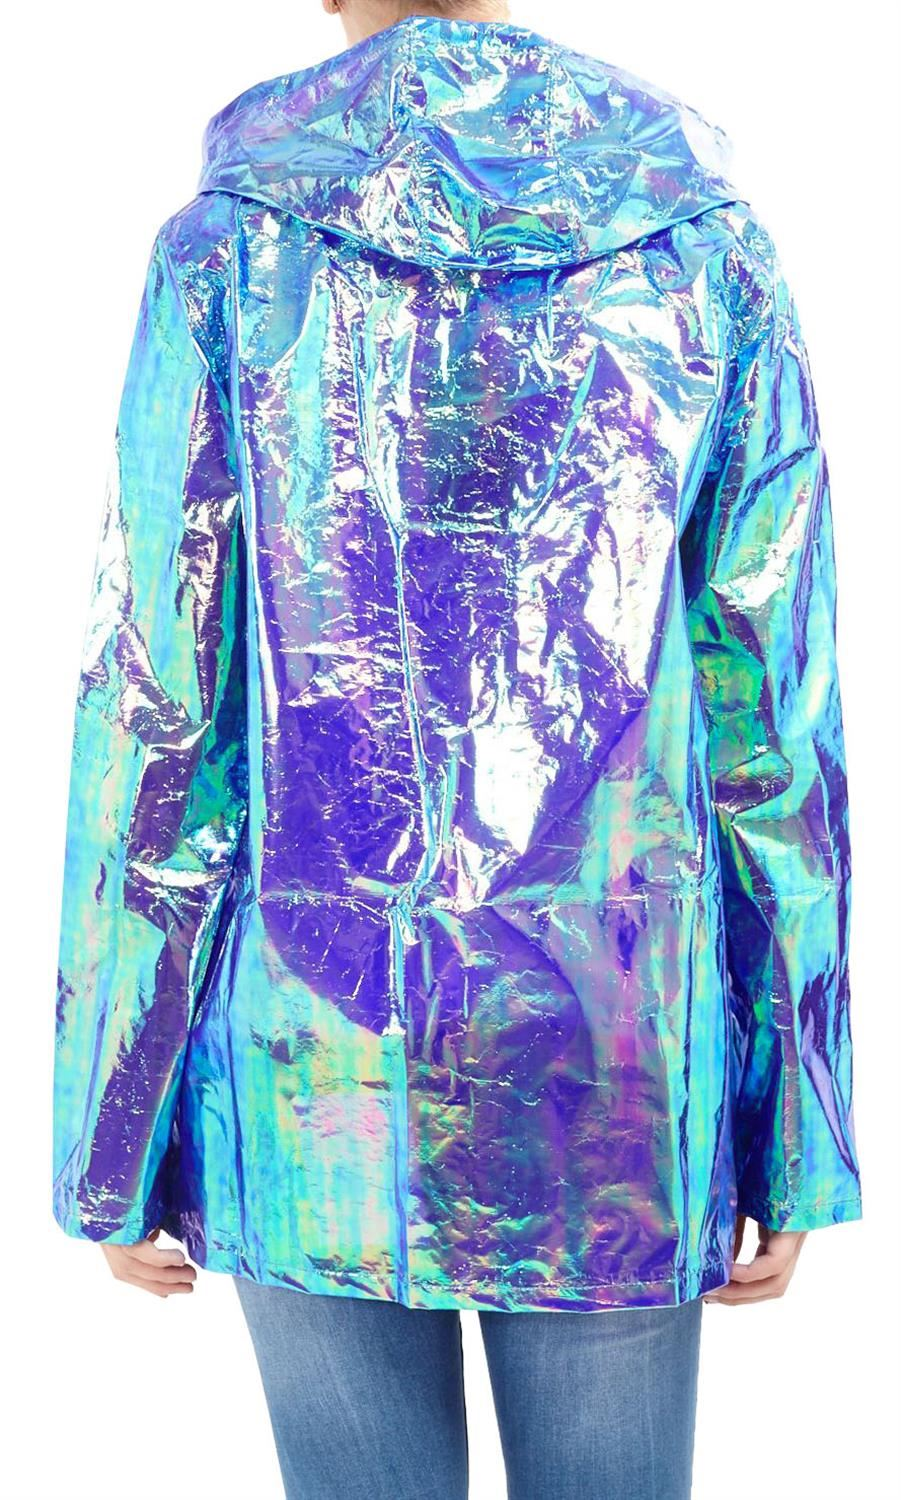 Womens-Waterproof-Holographic-Zipped-Neon-Festival-Mac-Jacket-Parka-Raincoat thumbnail 11